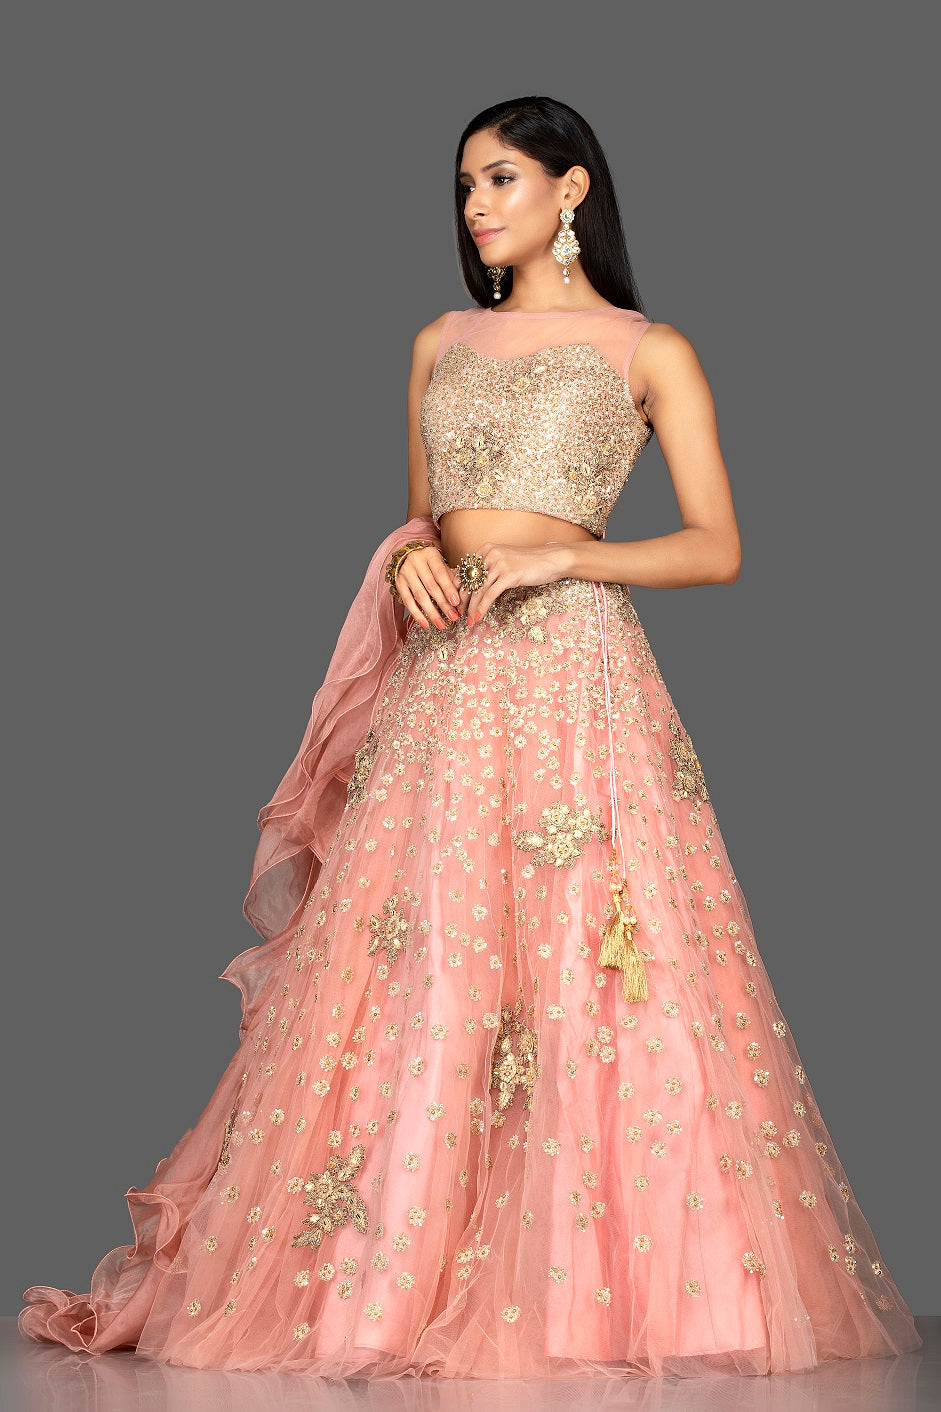 Shop exquisite dusty pink zardozi embroidery net lehenga online in USA with net dupatta. Look radiant on weddings and special occasions in splendid designer lehengas crafted with finest embroideries and stunning silhouettes from Pure Elegance Indian fashion boutique in USA..-side